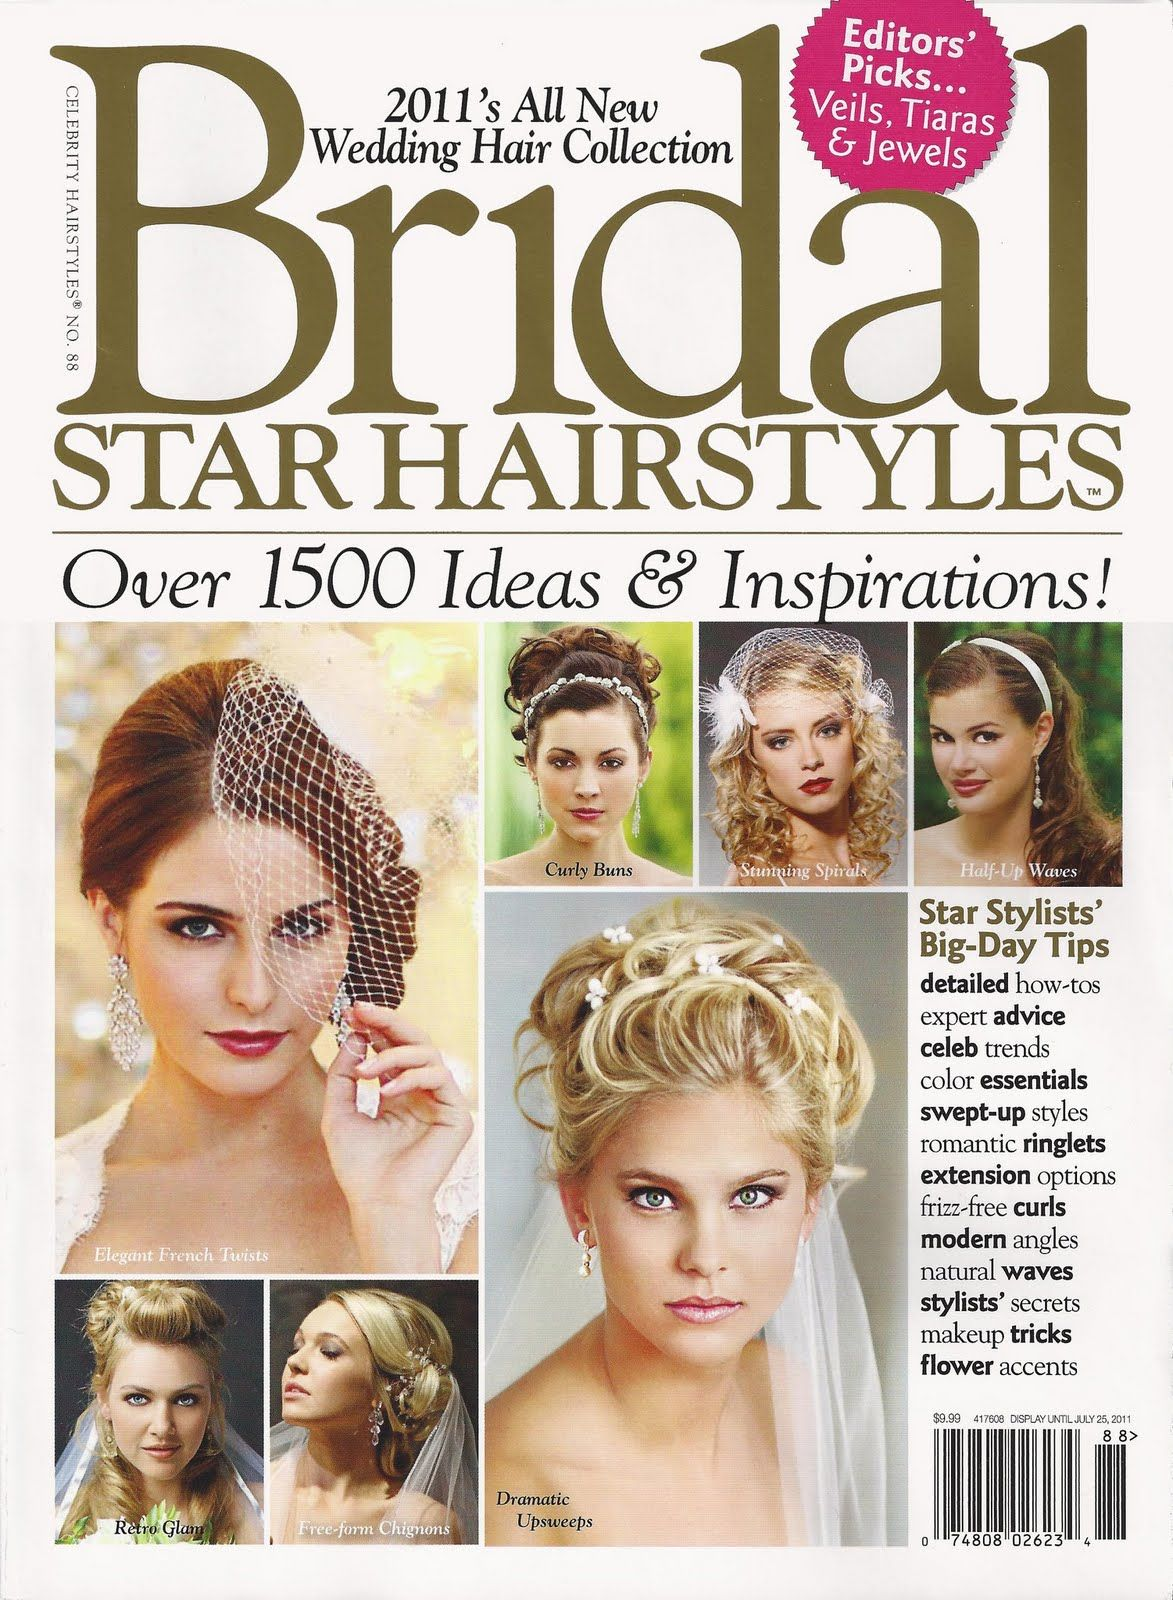 bridal star hairstyles magazine' featuring some of mandy